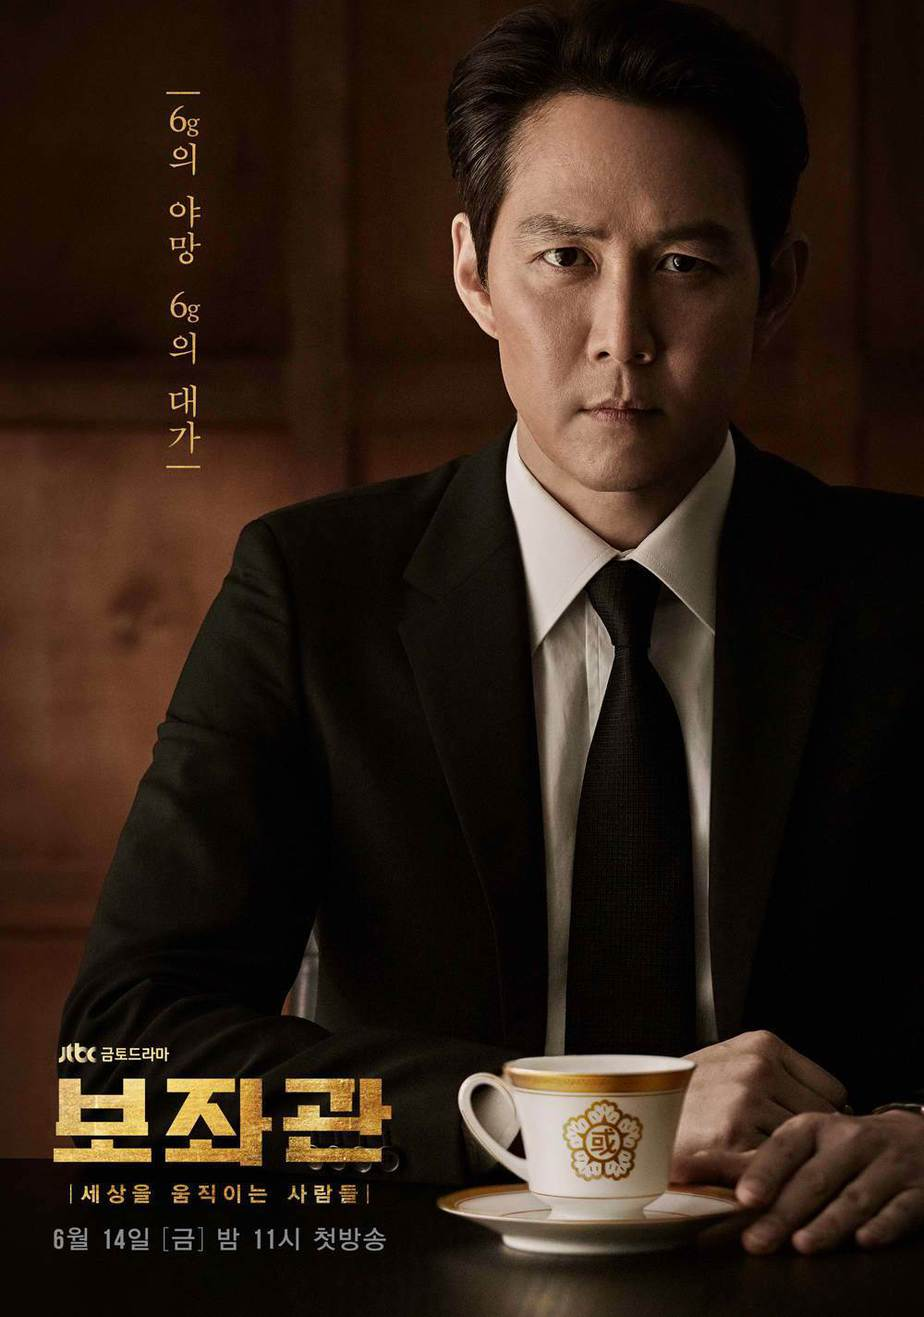 Chief-of-Staff-season 2